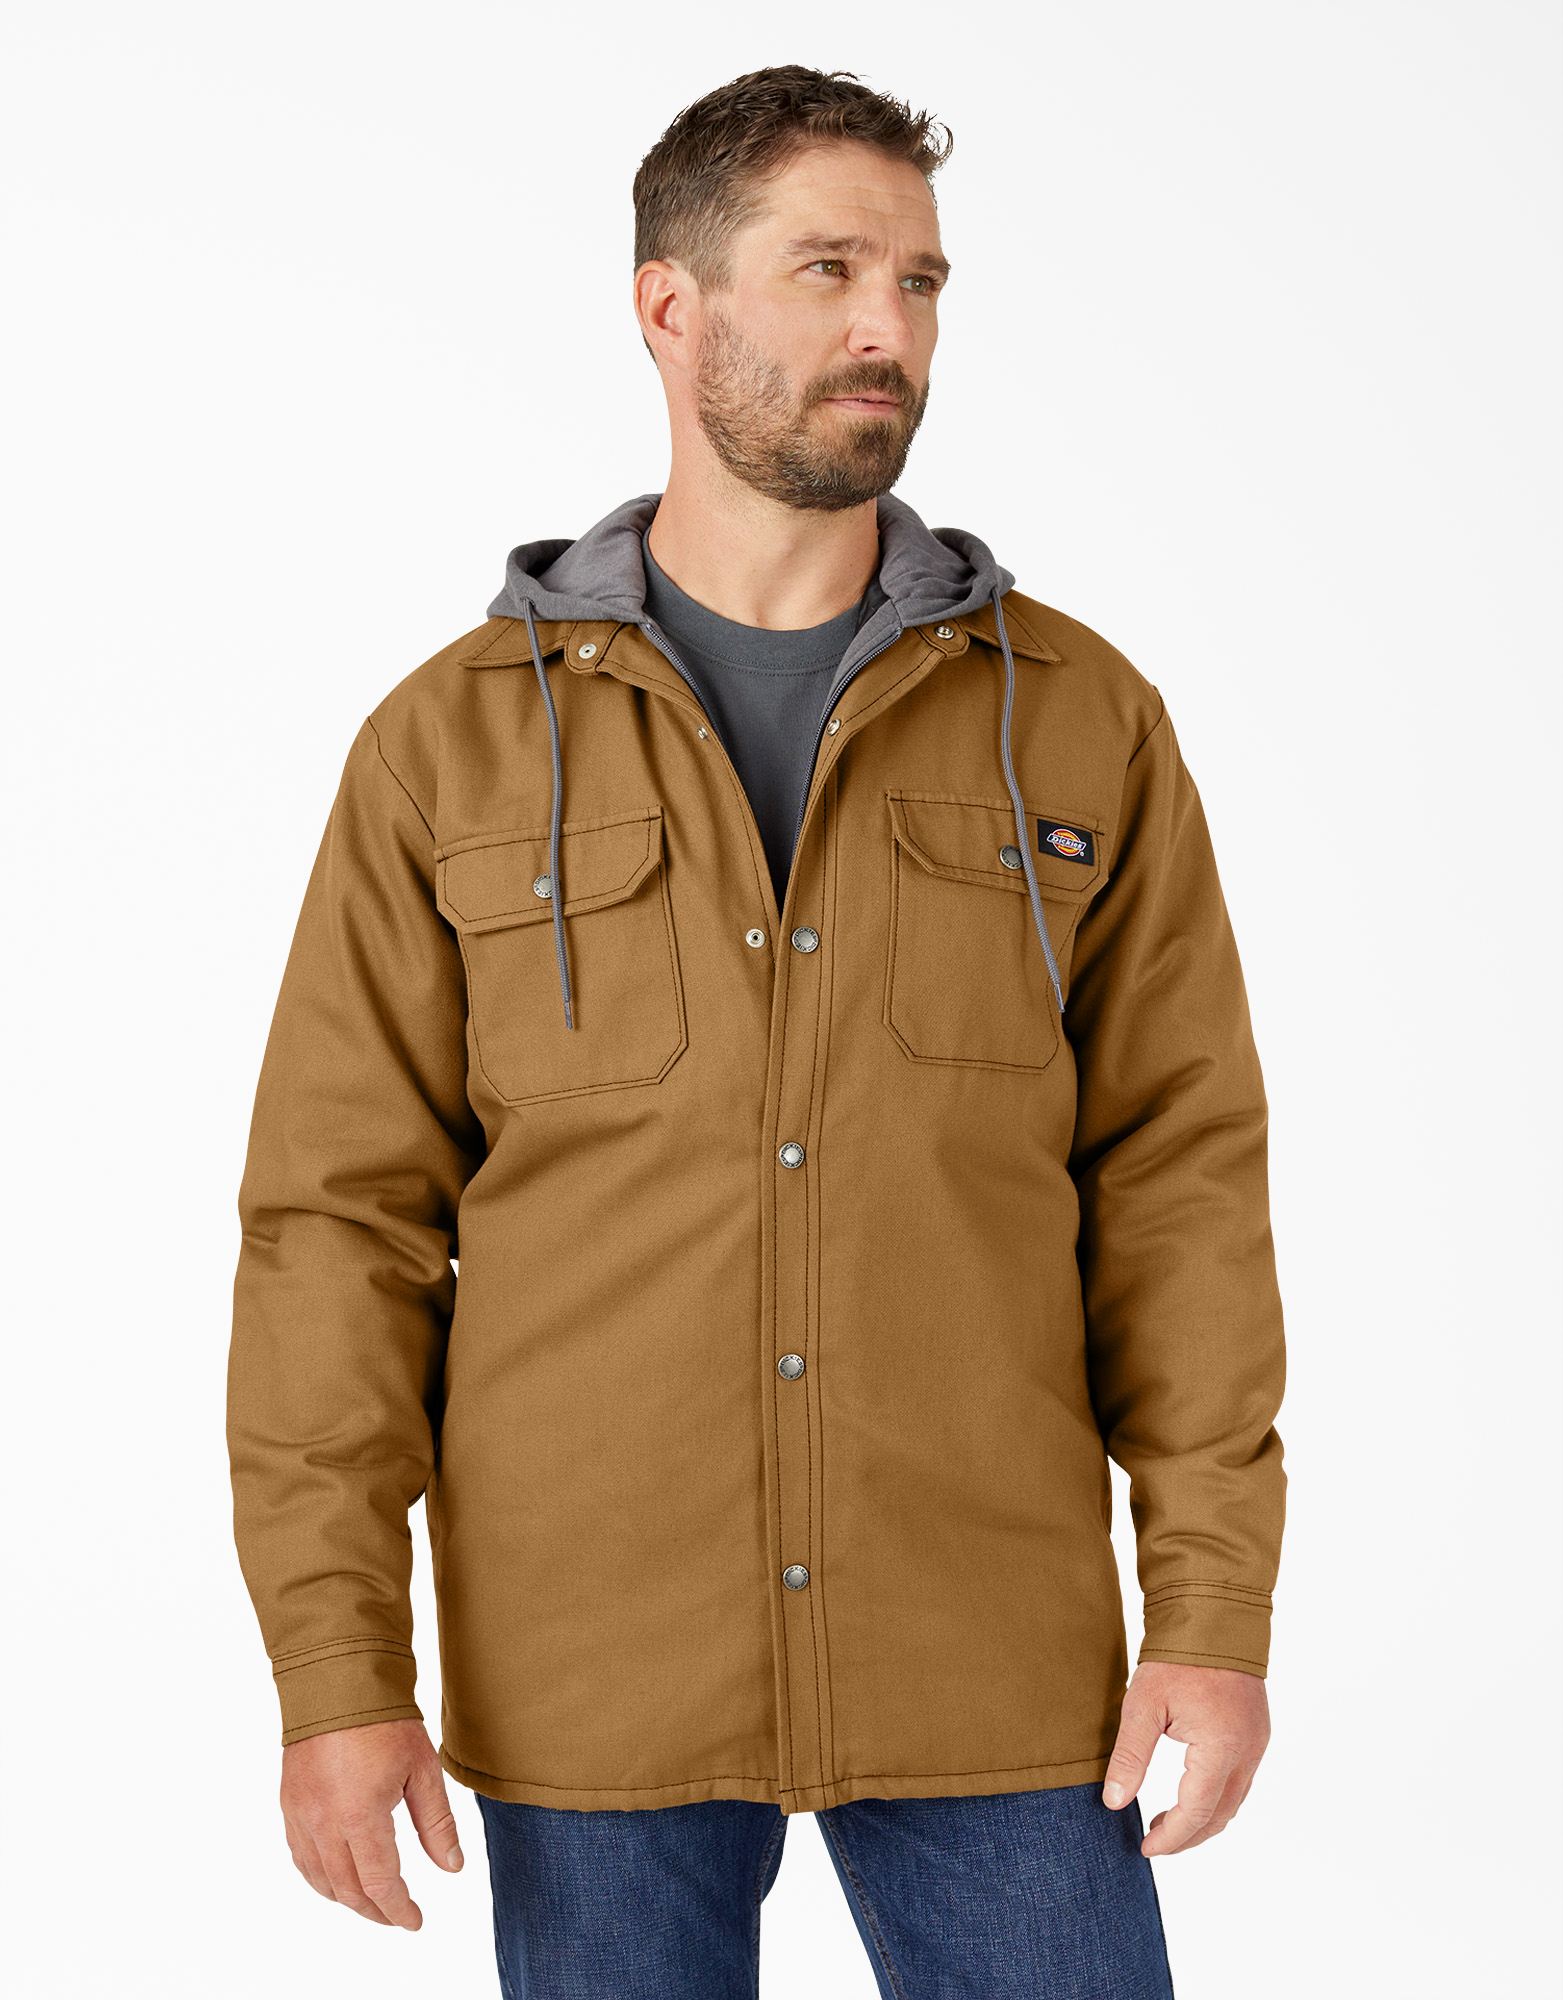 Fleece Hooded Duck Shirt Jacket with Hydroshield - Brown Duck (BD)